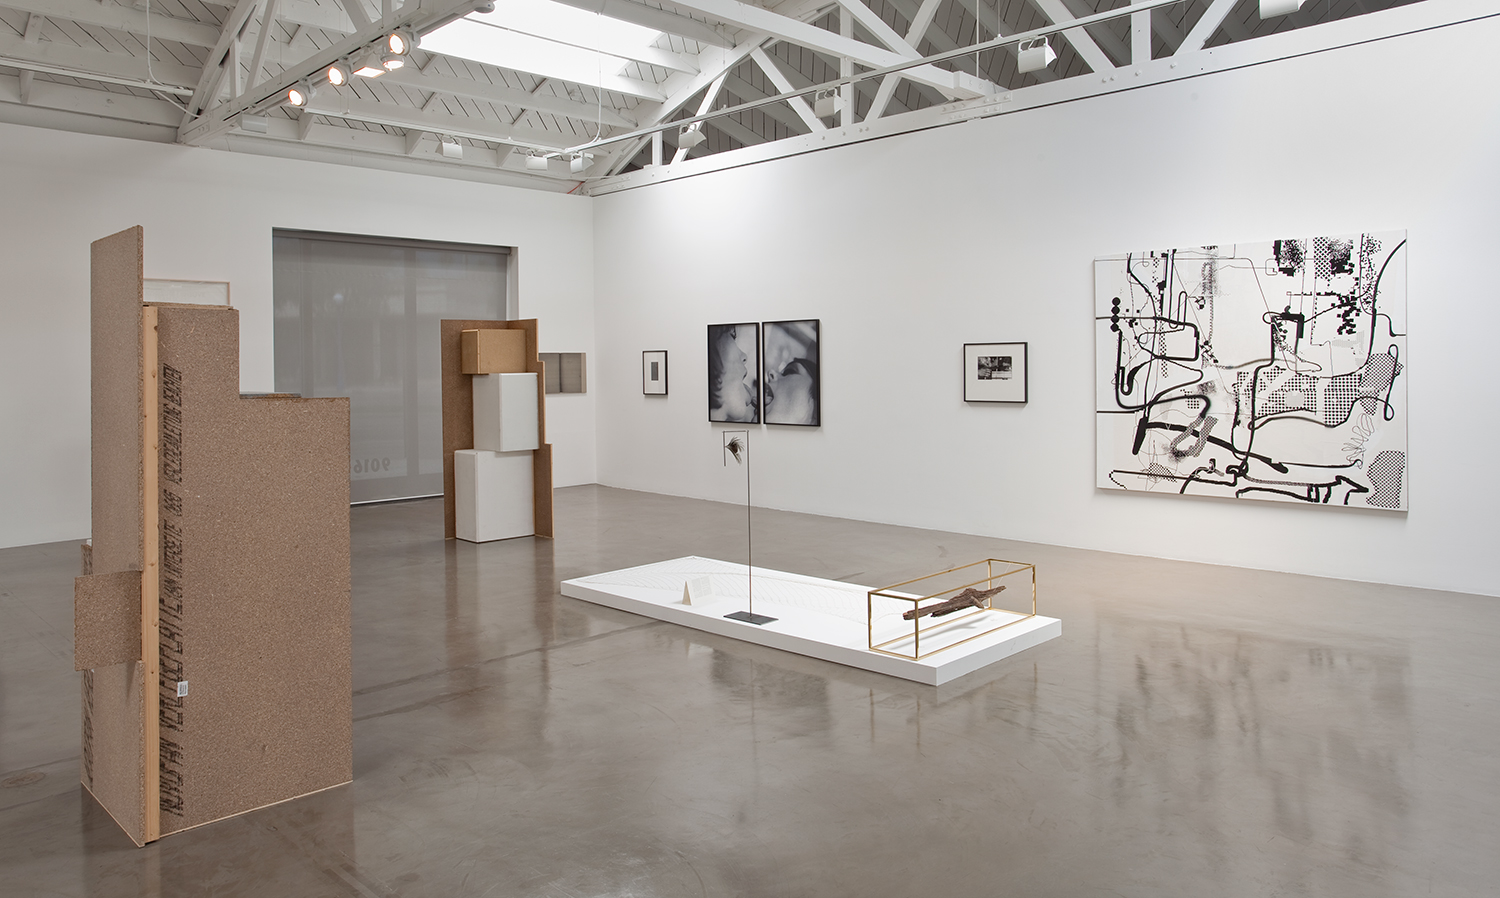 Picture Industry (Goodbye to All That) , Regen Projects, Los Angeles, CA, 2010.    Manfred Pernice, Thomas Barrow, Cosey Fanni Tutti,Carol Bove, and Albert Oehlen